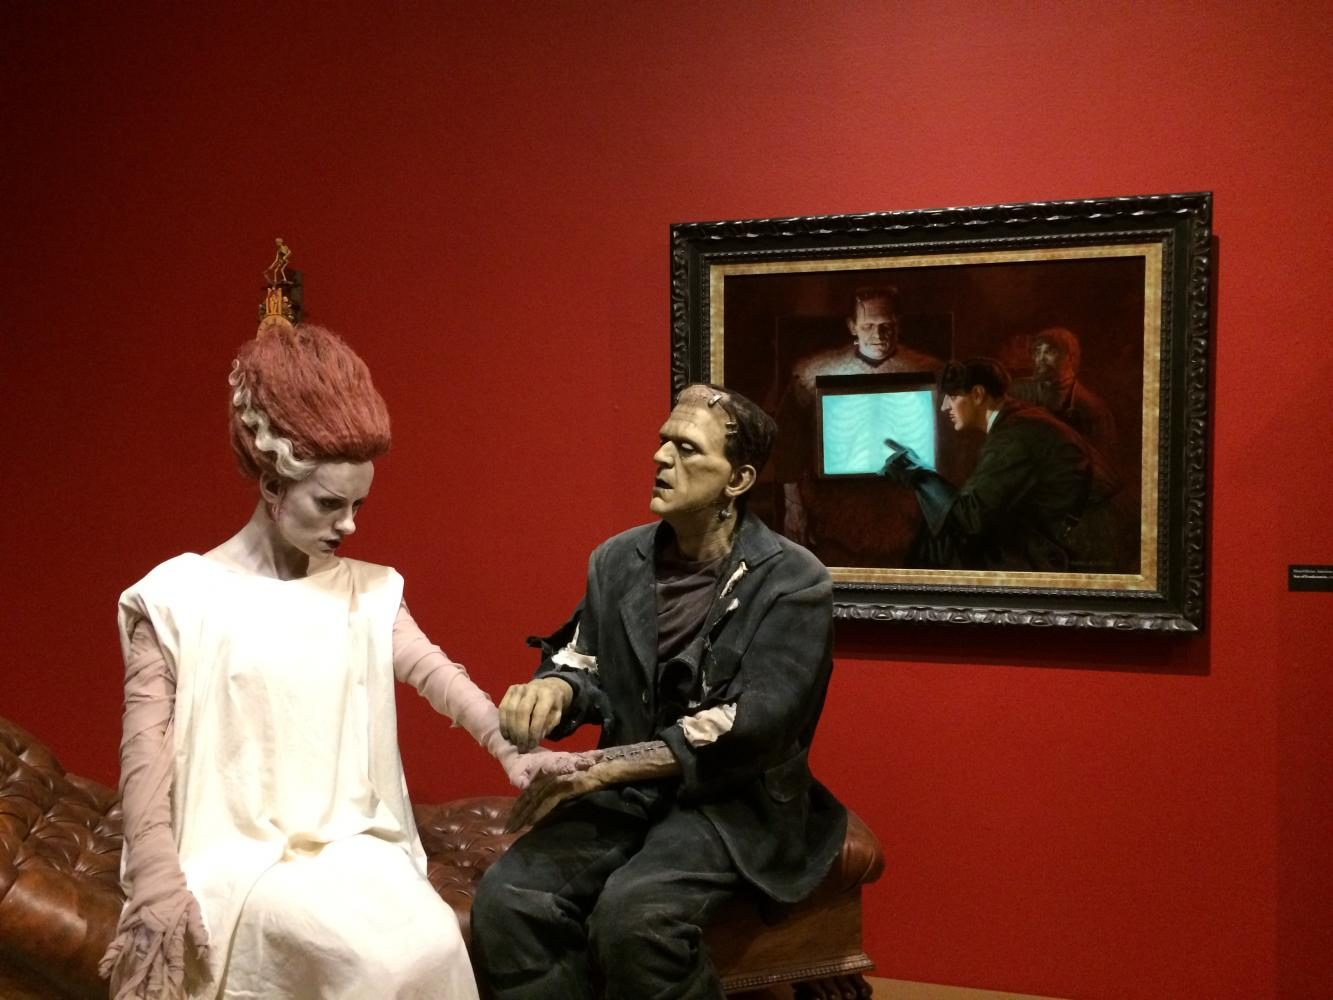 Guillermo Del Toros exhibit entitled At Home With Monsters is open at the Mia until May 28.